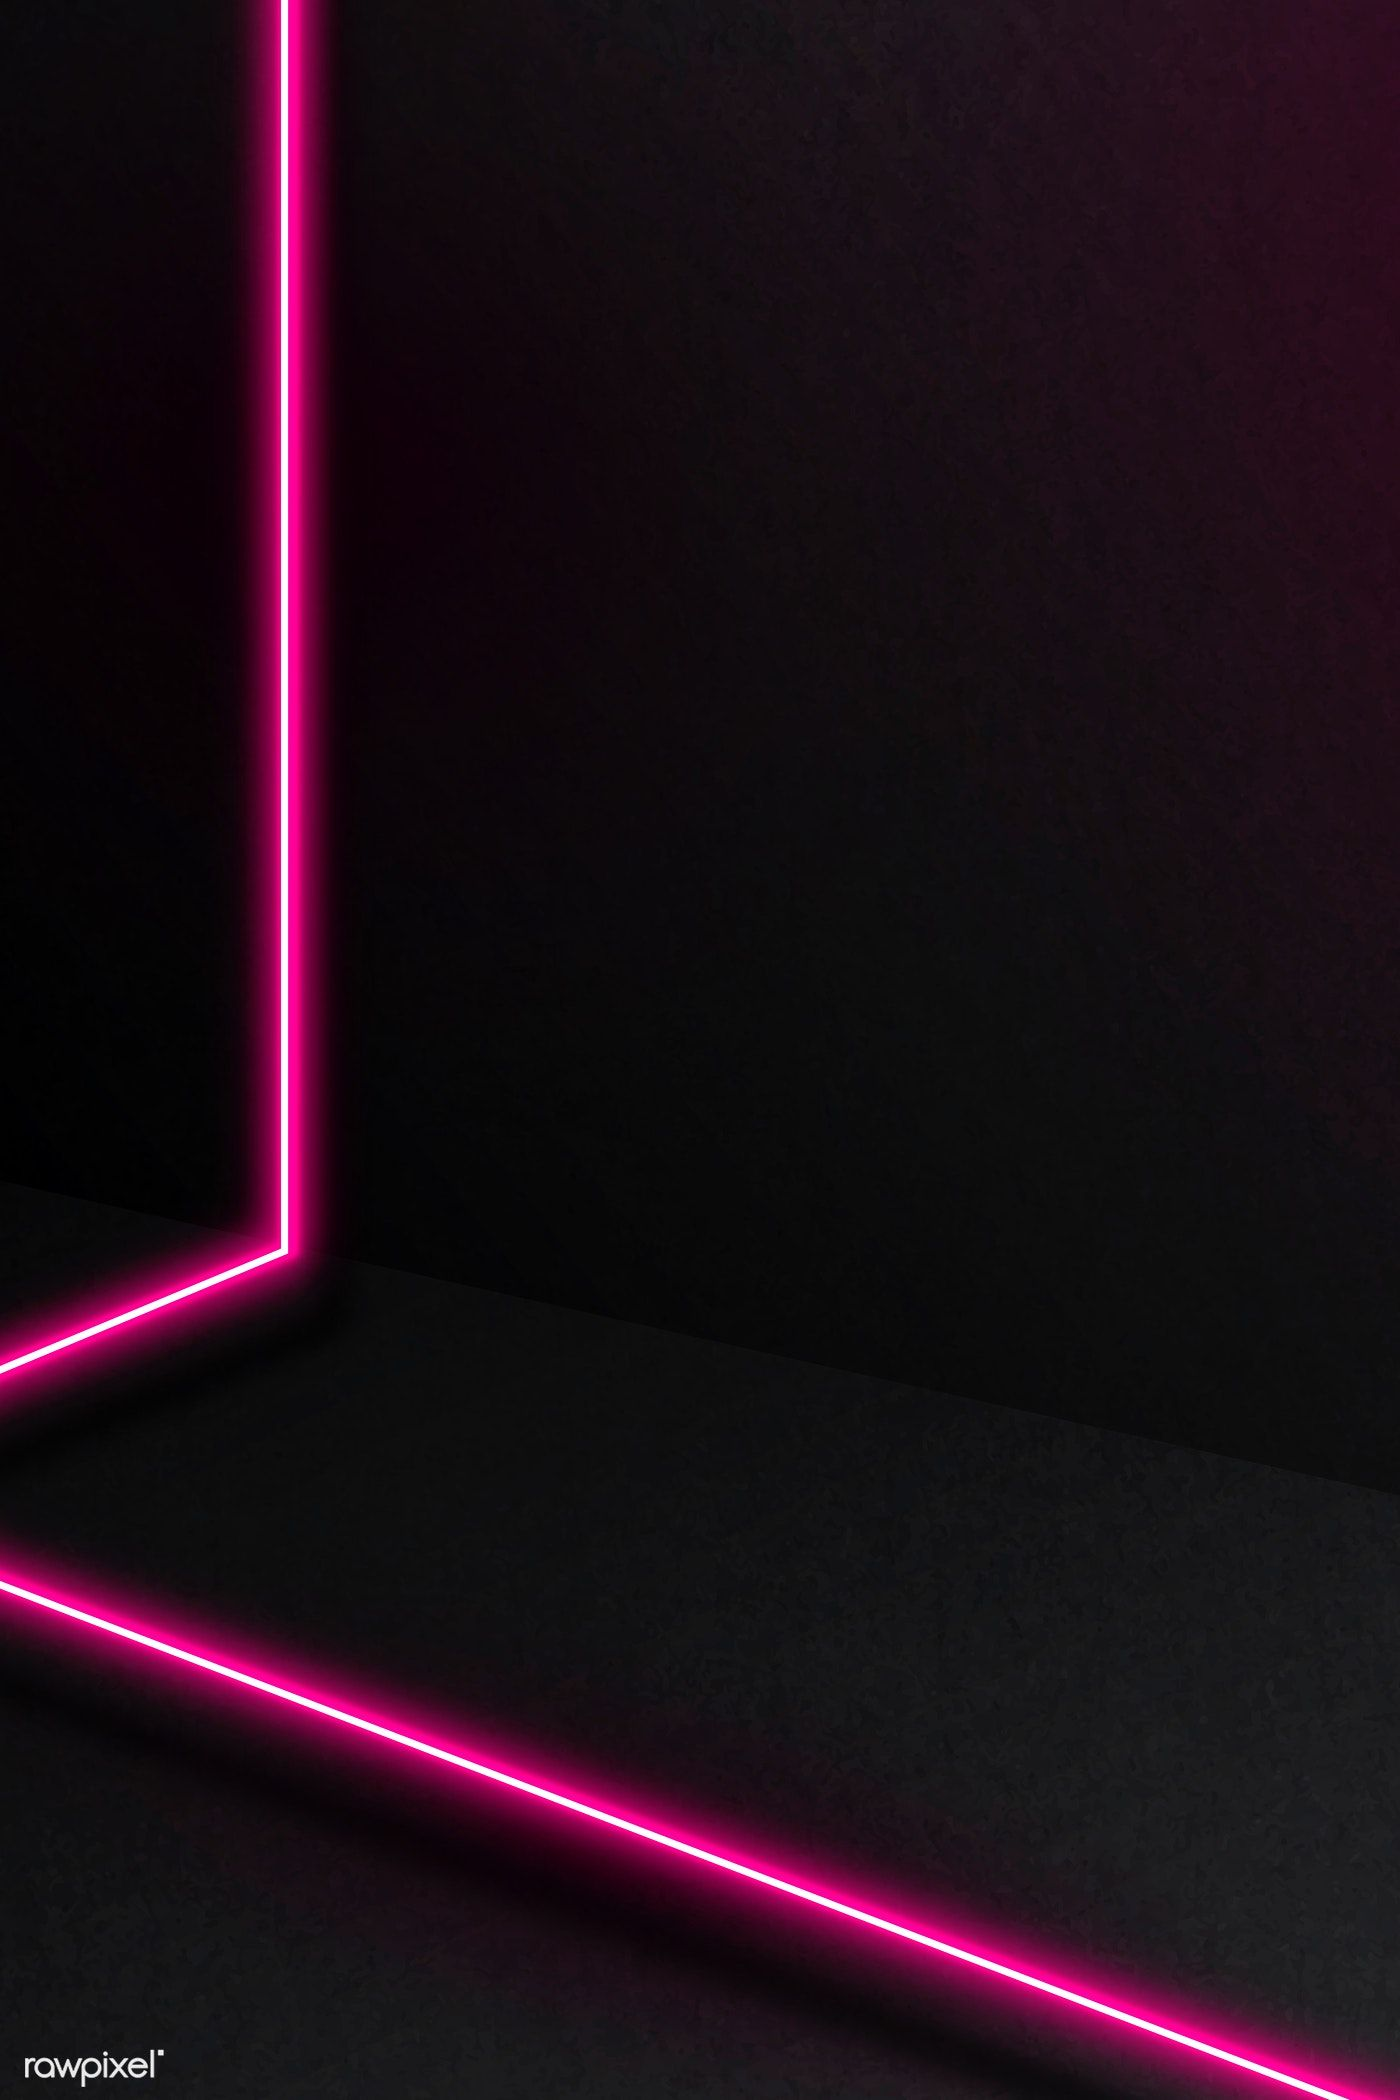 Download Premium Vector Of Pink Glowing Lines On Dark Background Vector Dark Background Wallpaper Dark Backgrounds Pink And Black Wallpaper